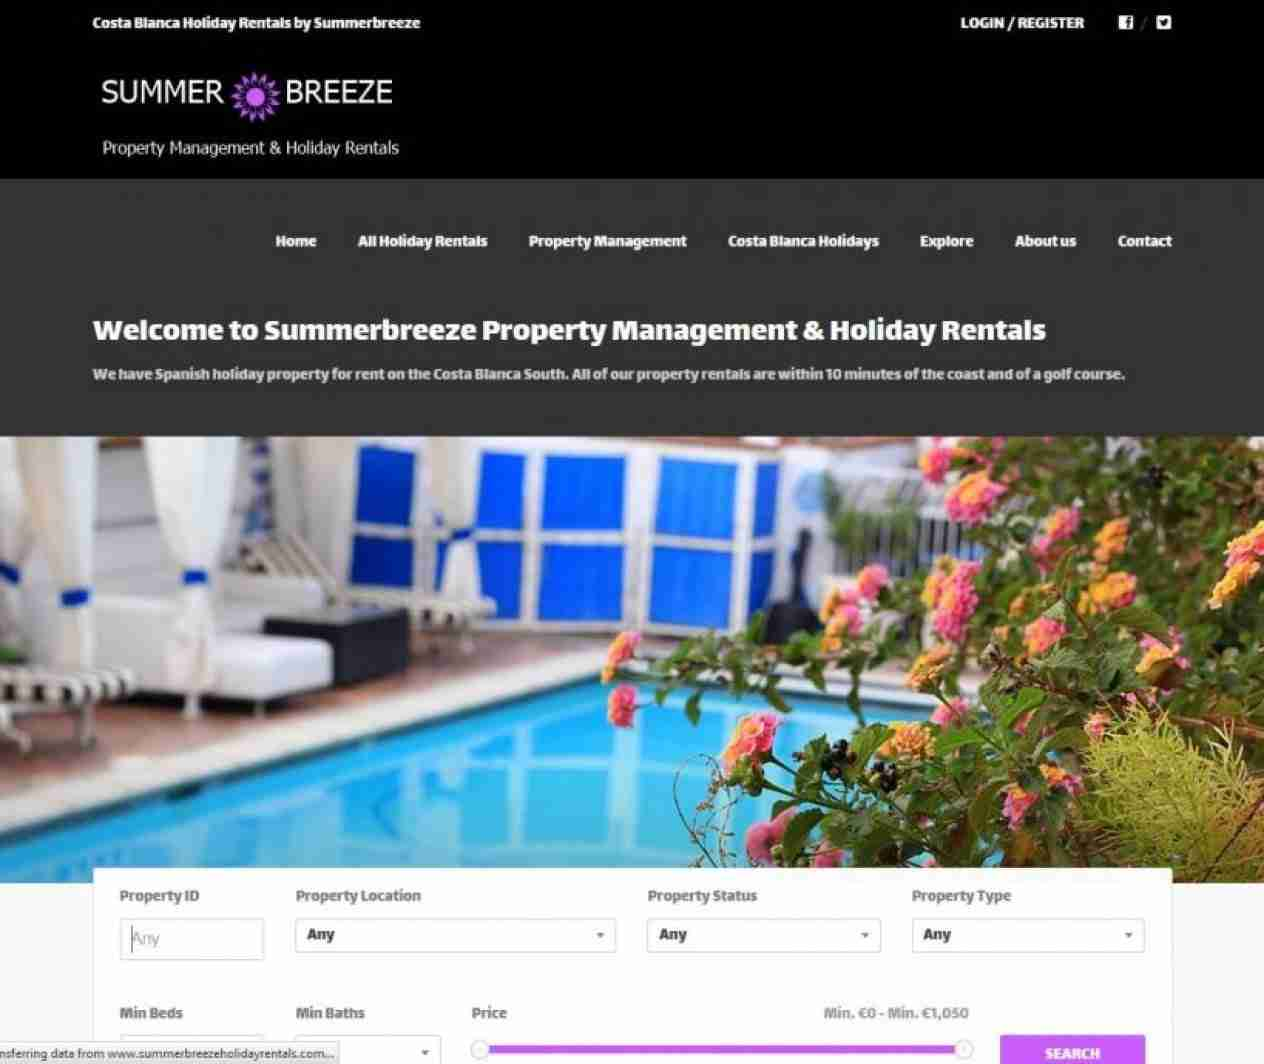 Summerbreeze Holiday Rentals